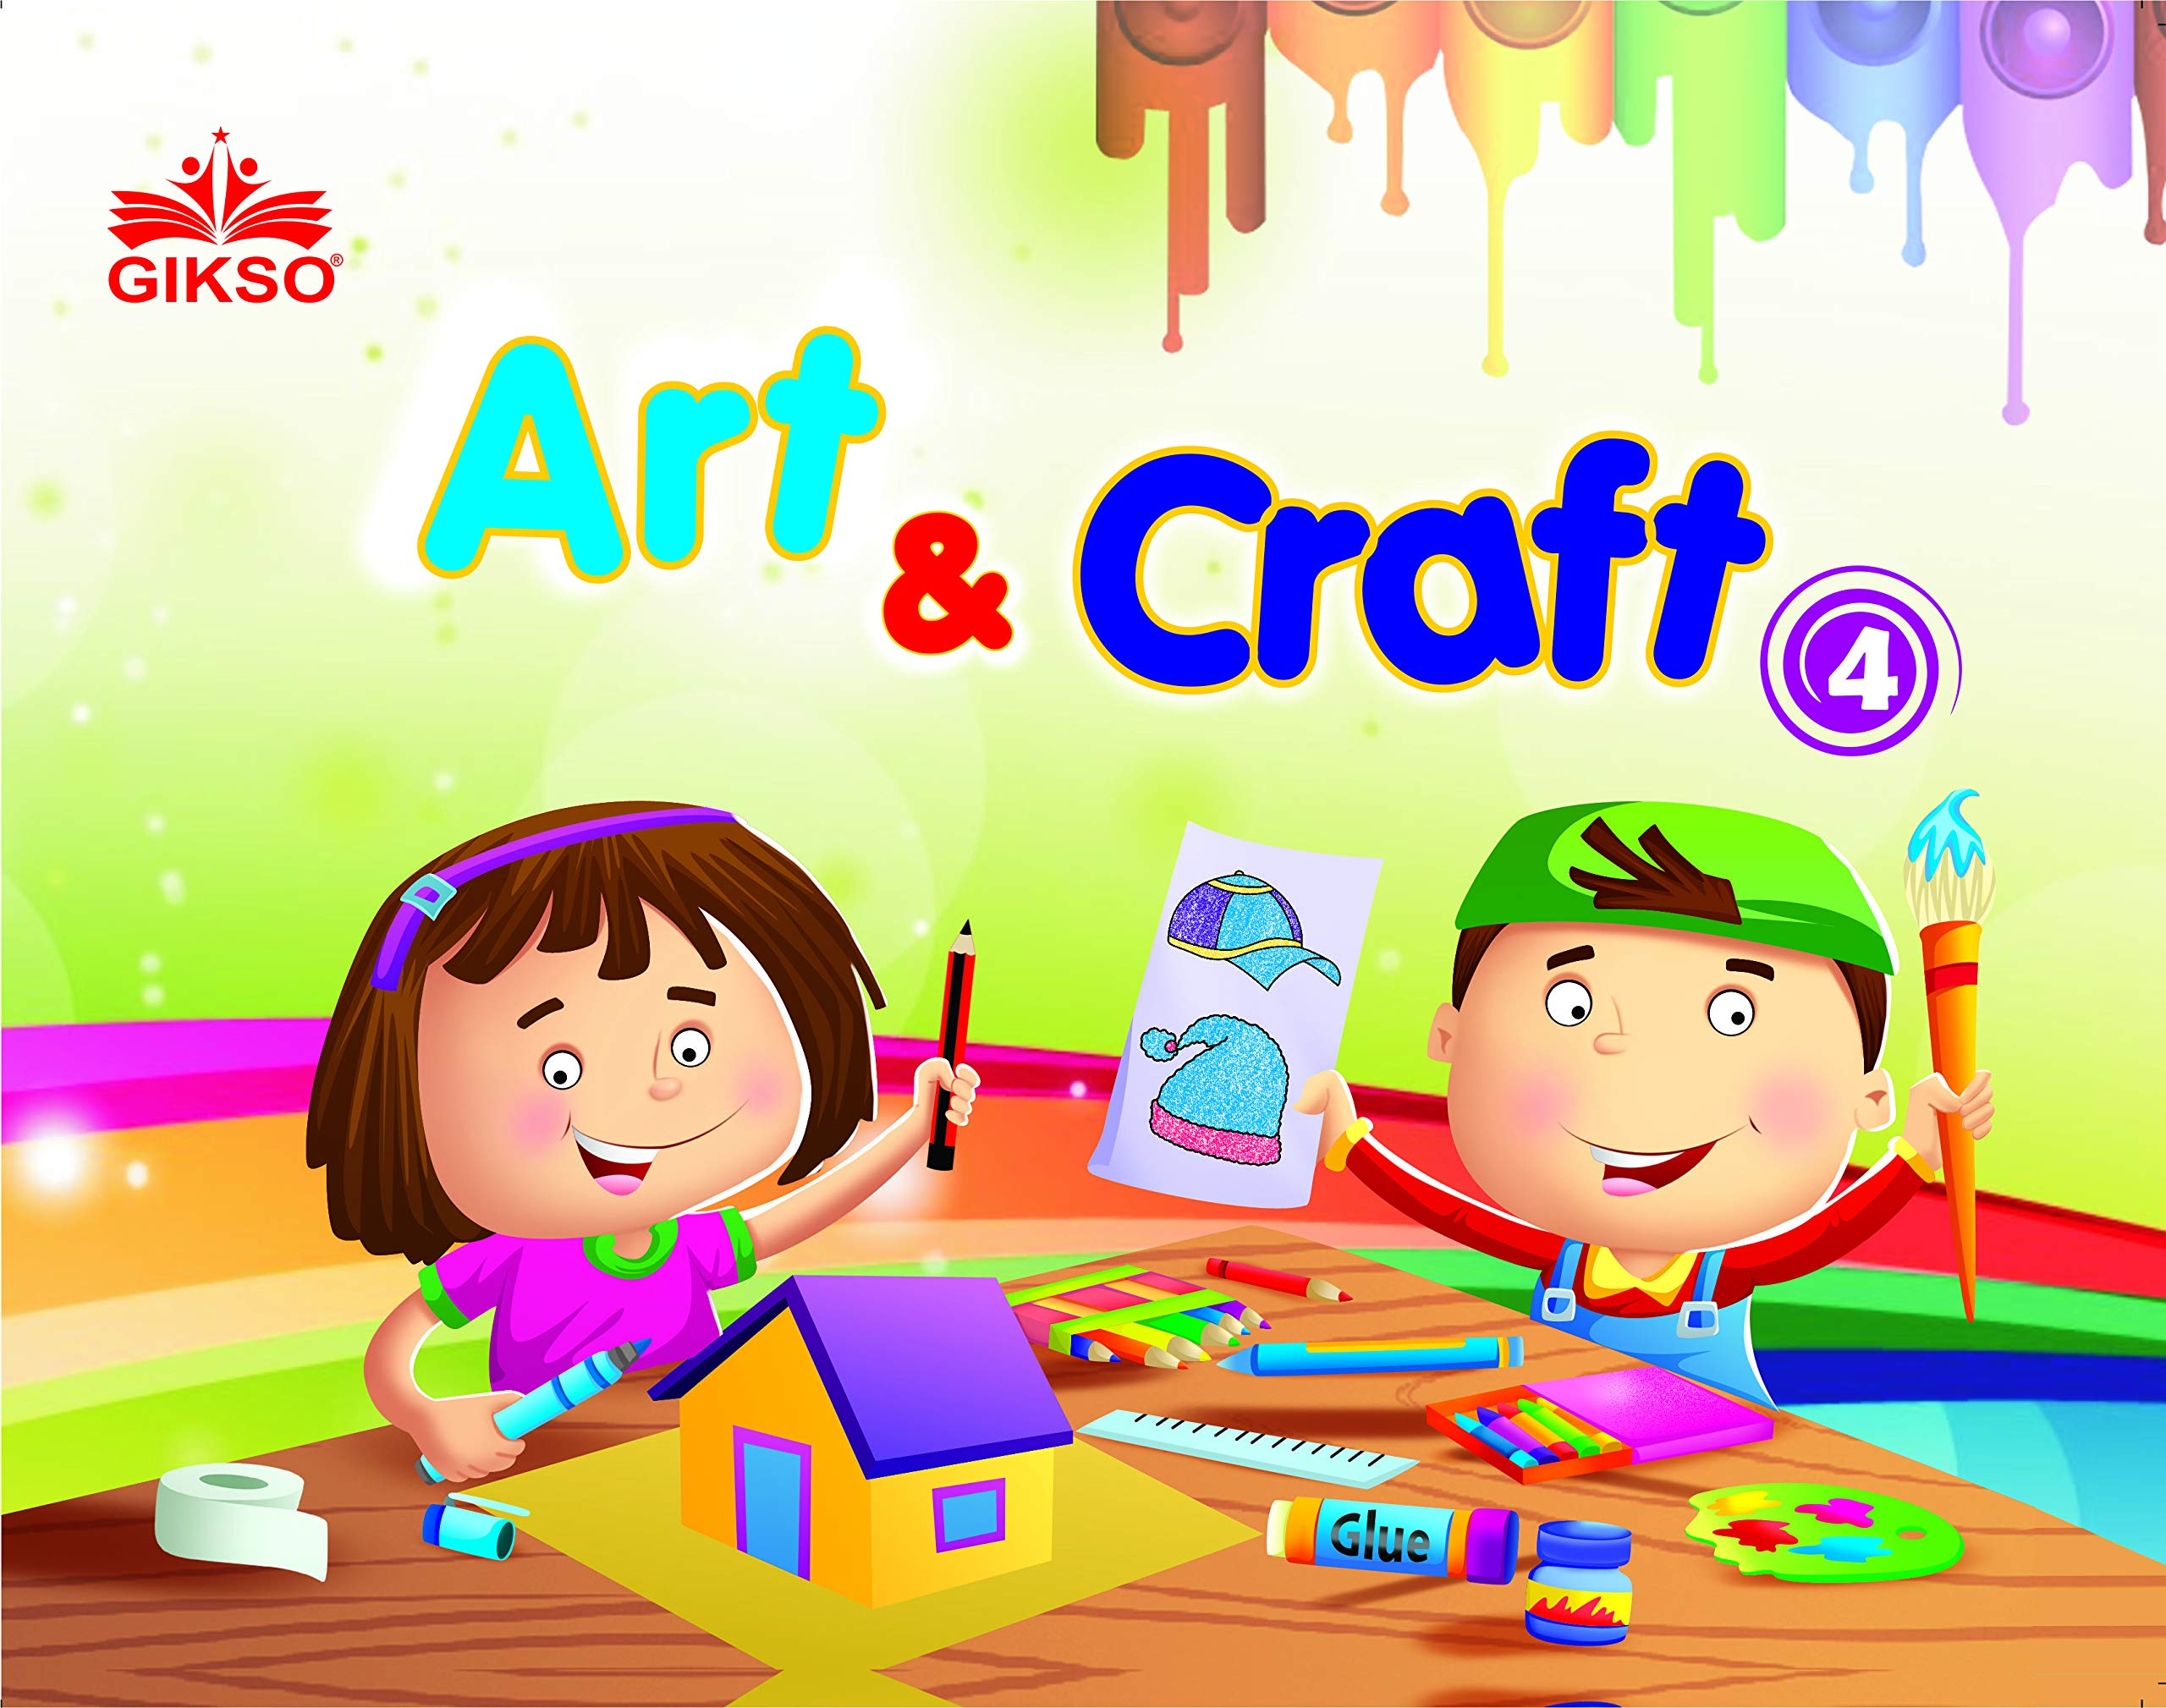 Buy Gikso Art and Craft Book - 4 Activity Book for Kids Age 7 to 10